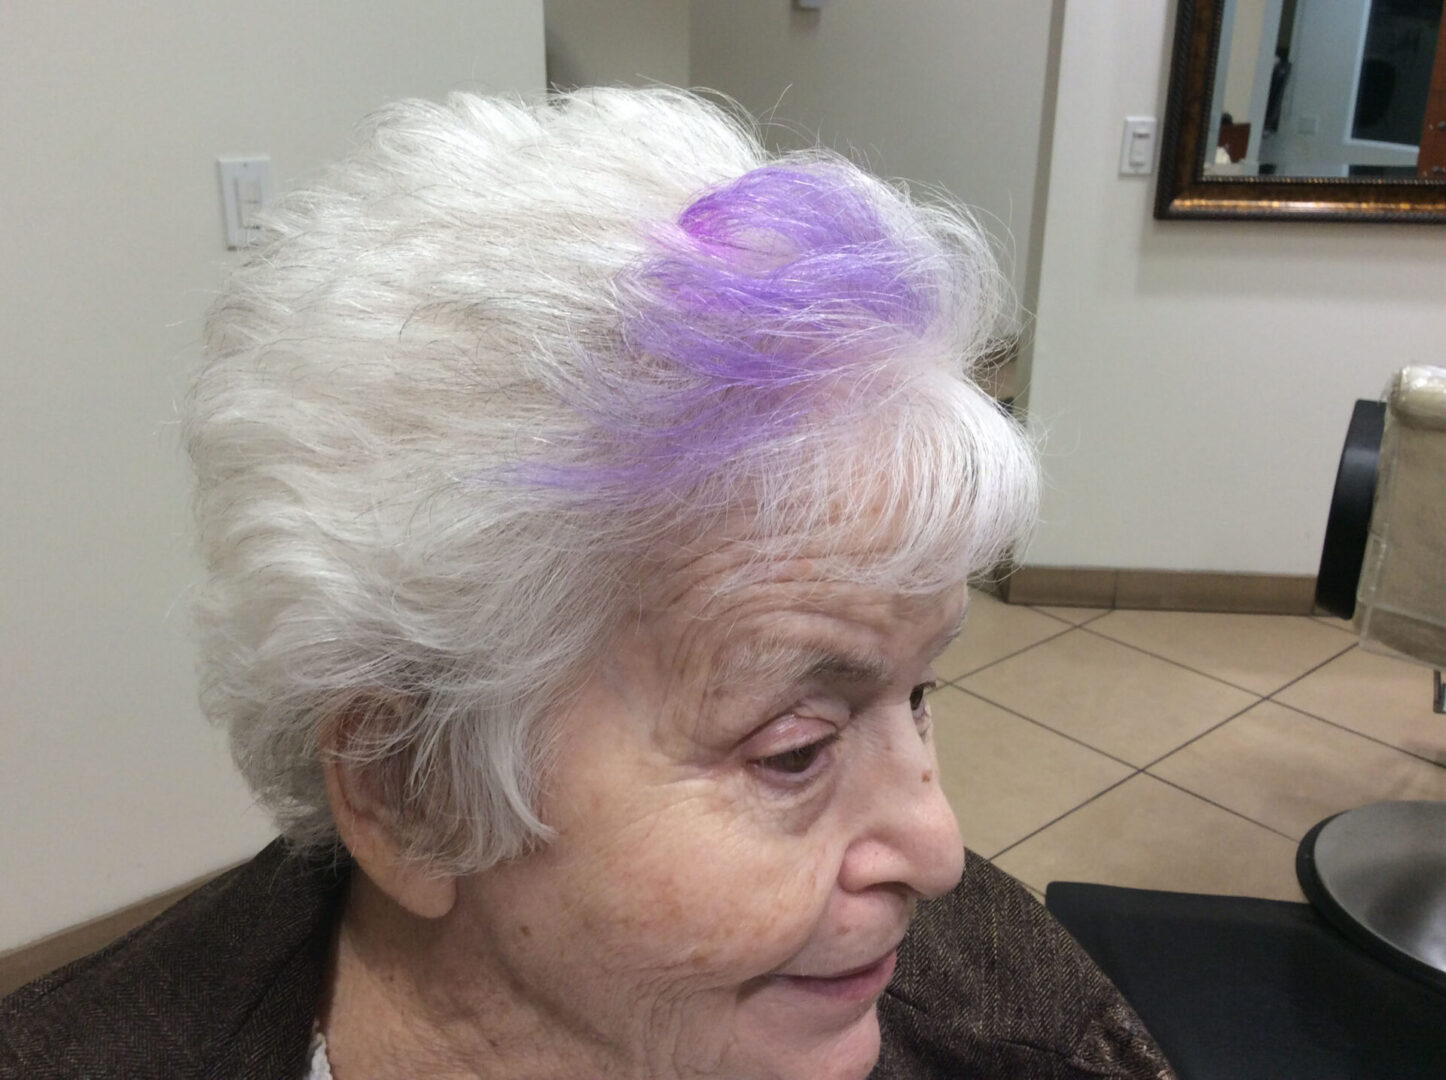 An old woman with purple highlights on her hair